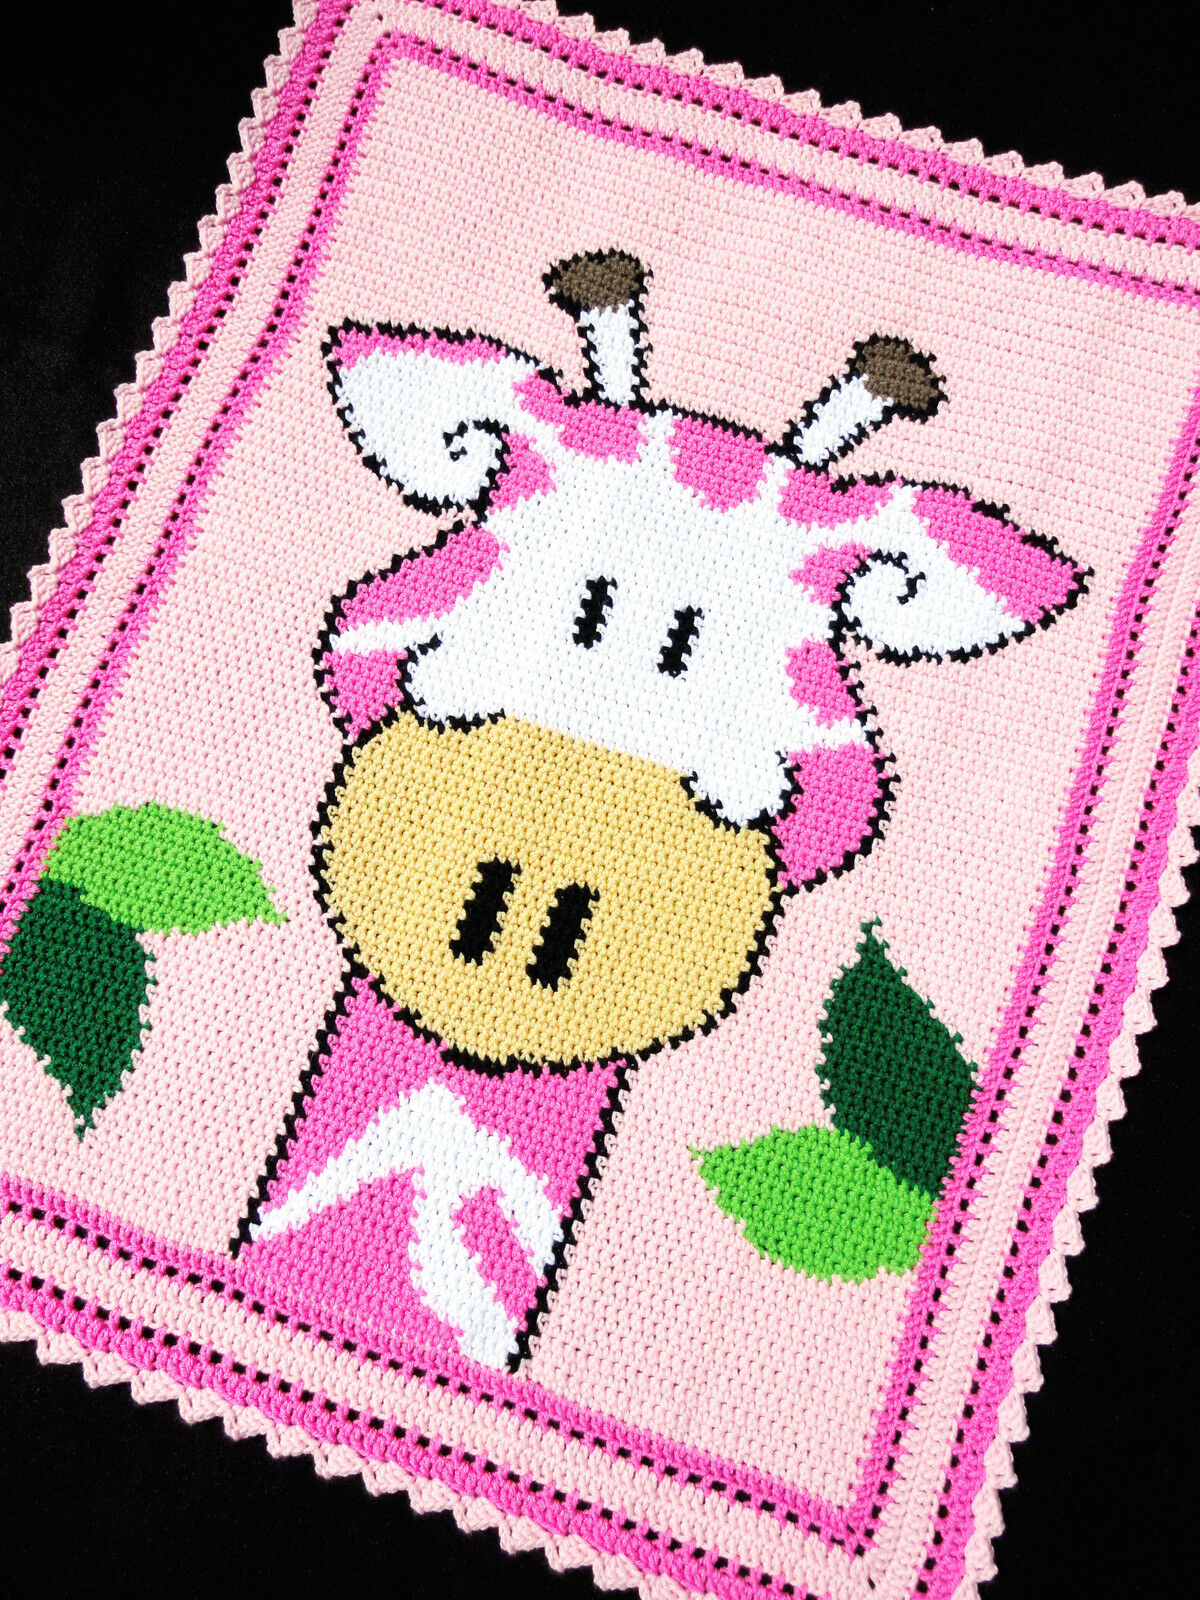 Baby Zoo Afghan Crochet Pattern : Crochet Patterns - GIRAFFE Zoo/Safari Color Graph BABY ...